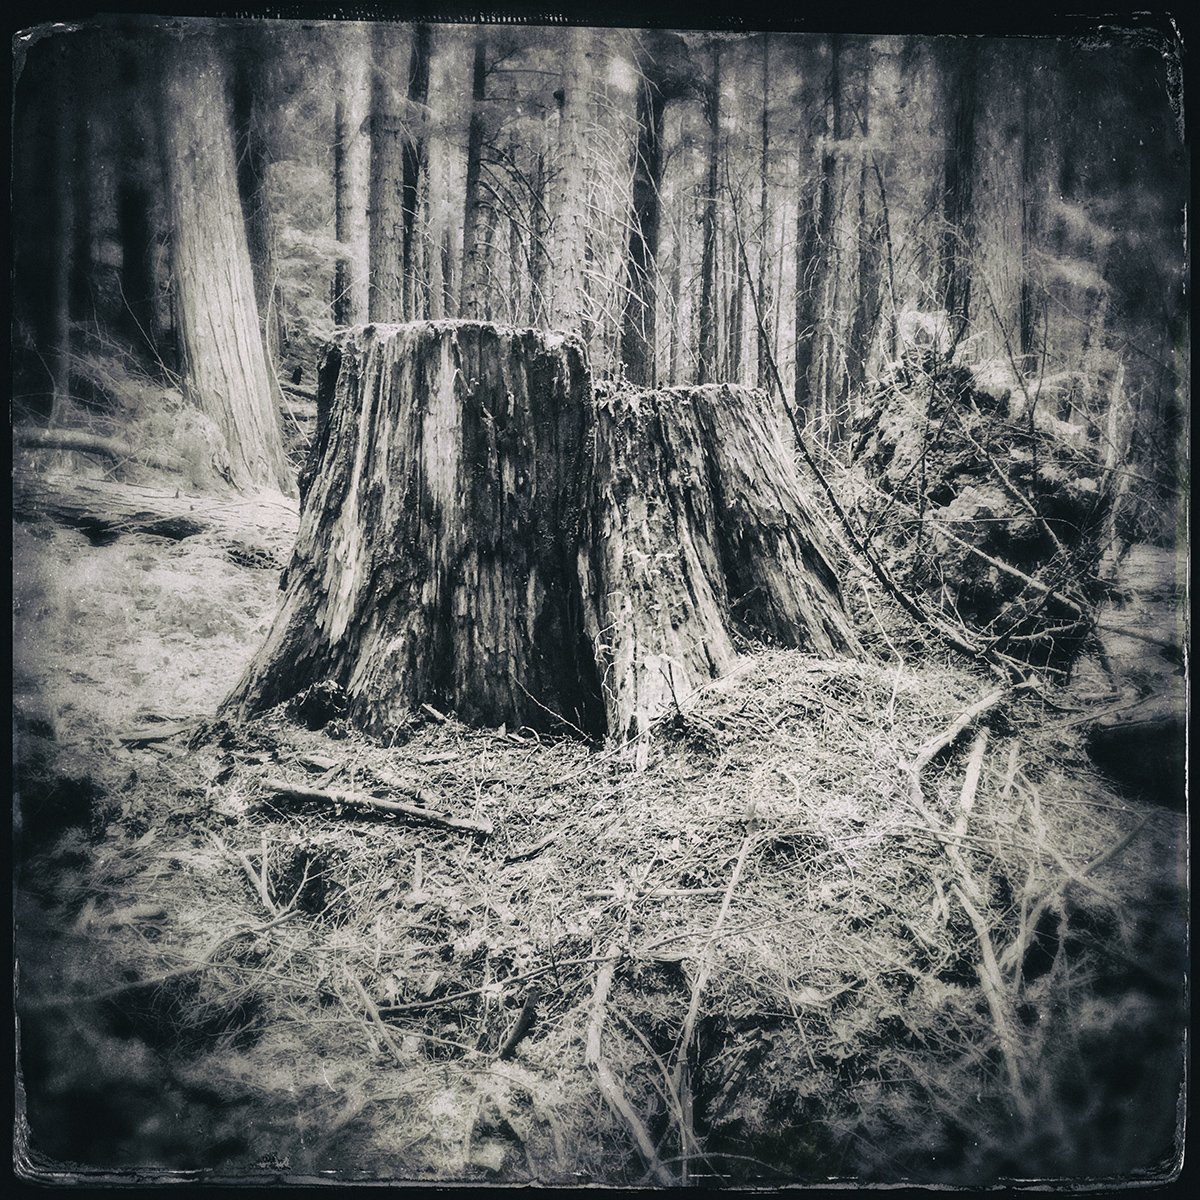 Forest of Lost Trees 7 72dpi.jpg